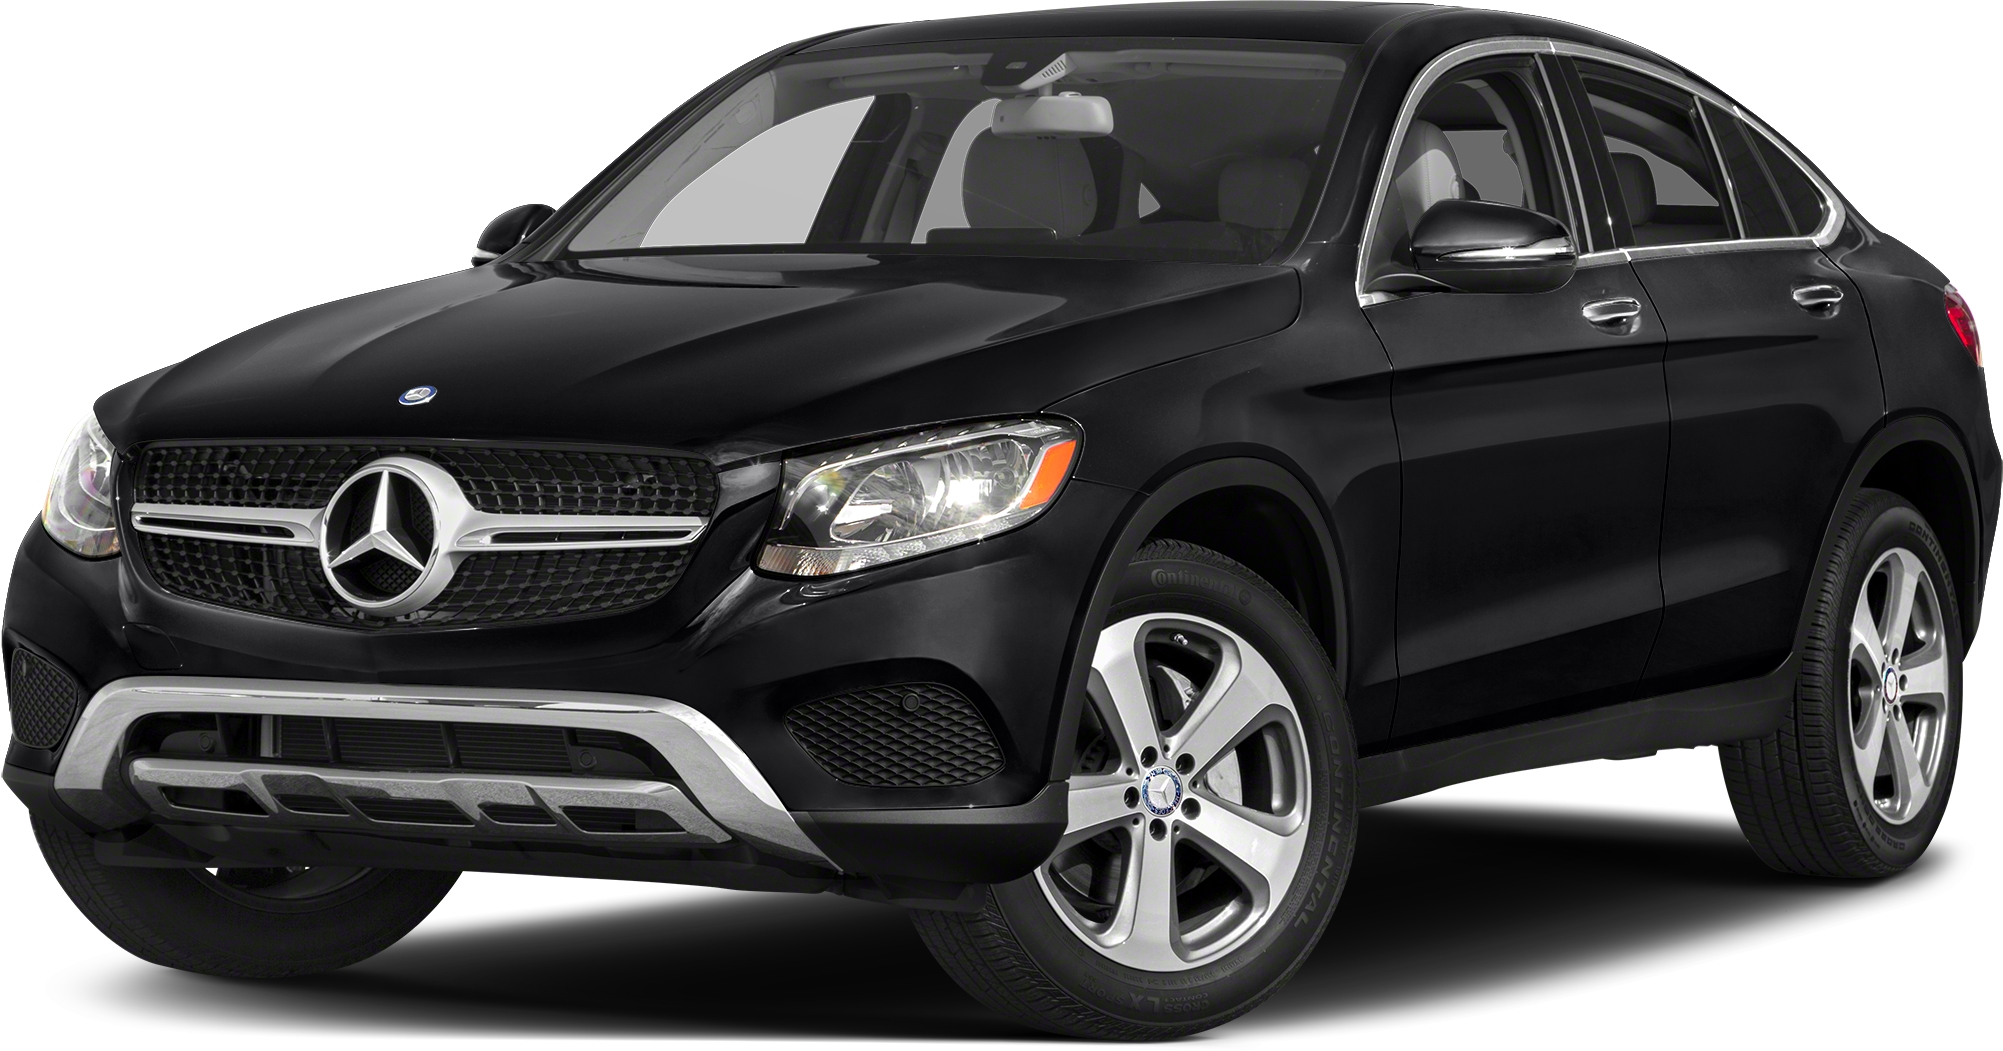 2018 mercedes benz glc 300 4matic coupe 24790041 for sale price purchase lease near me. Black Bedroom Furniture Sets. Home Design Ideas